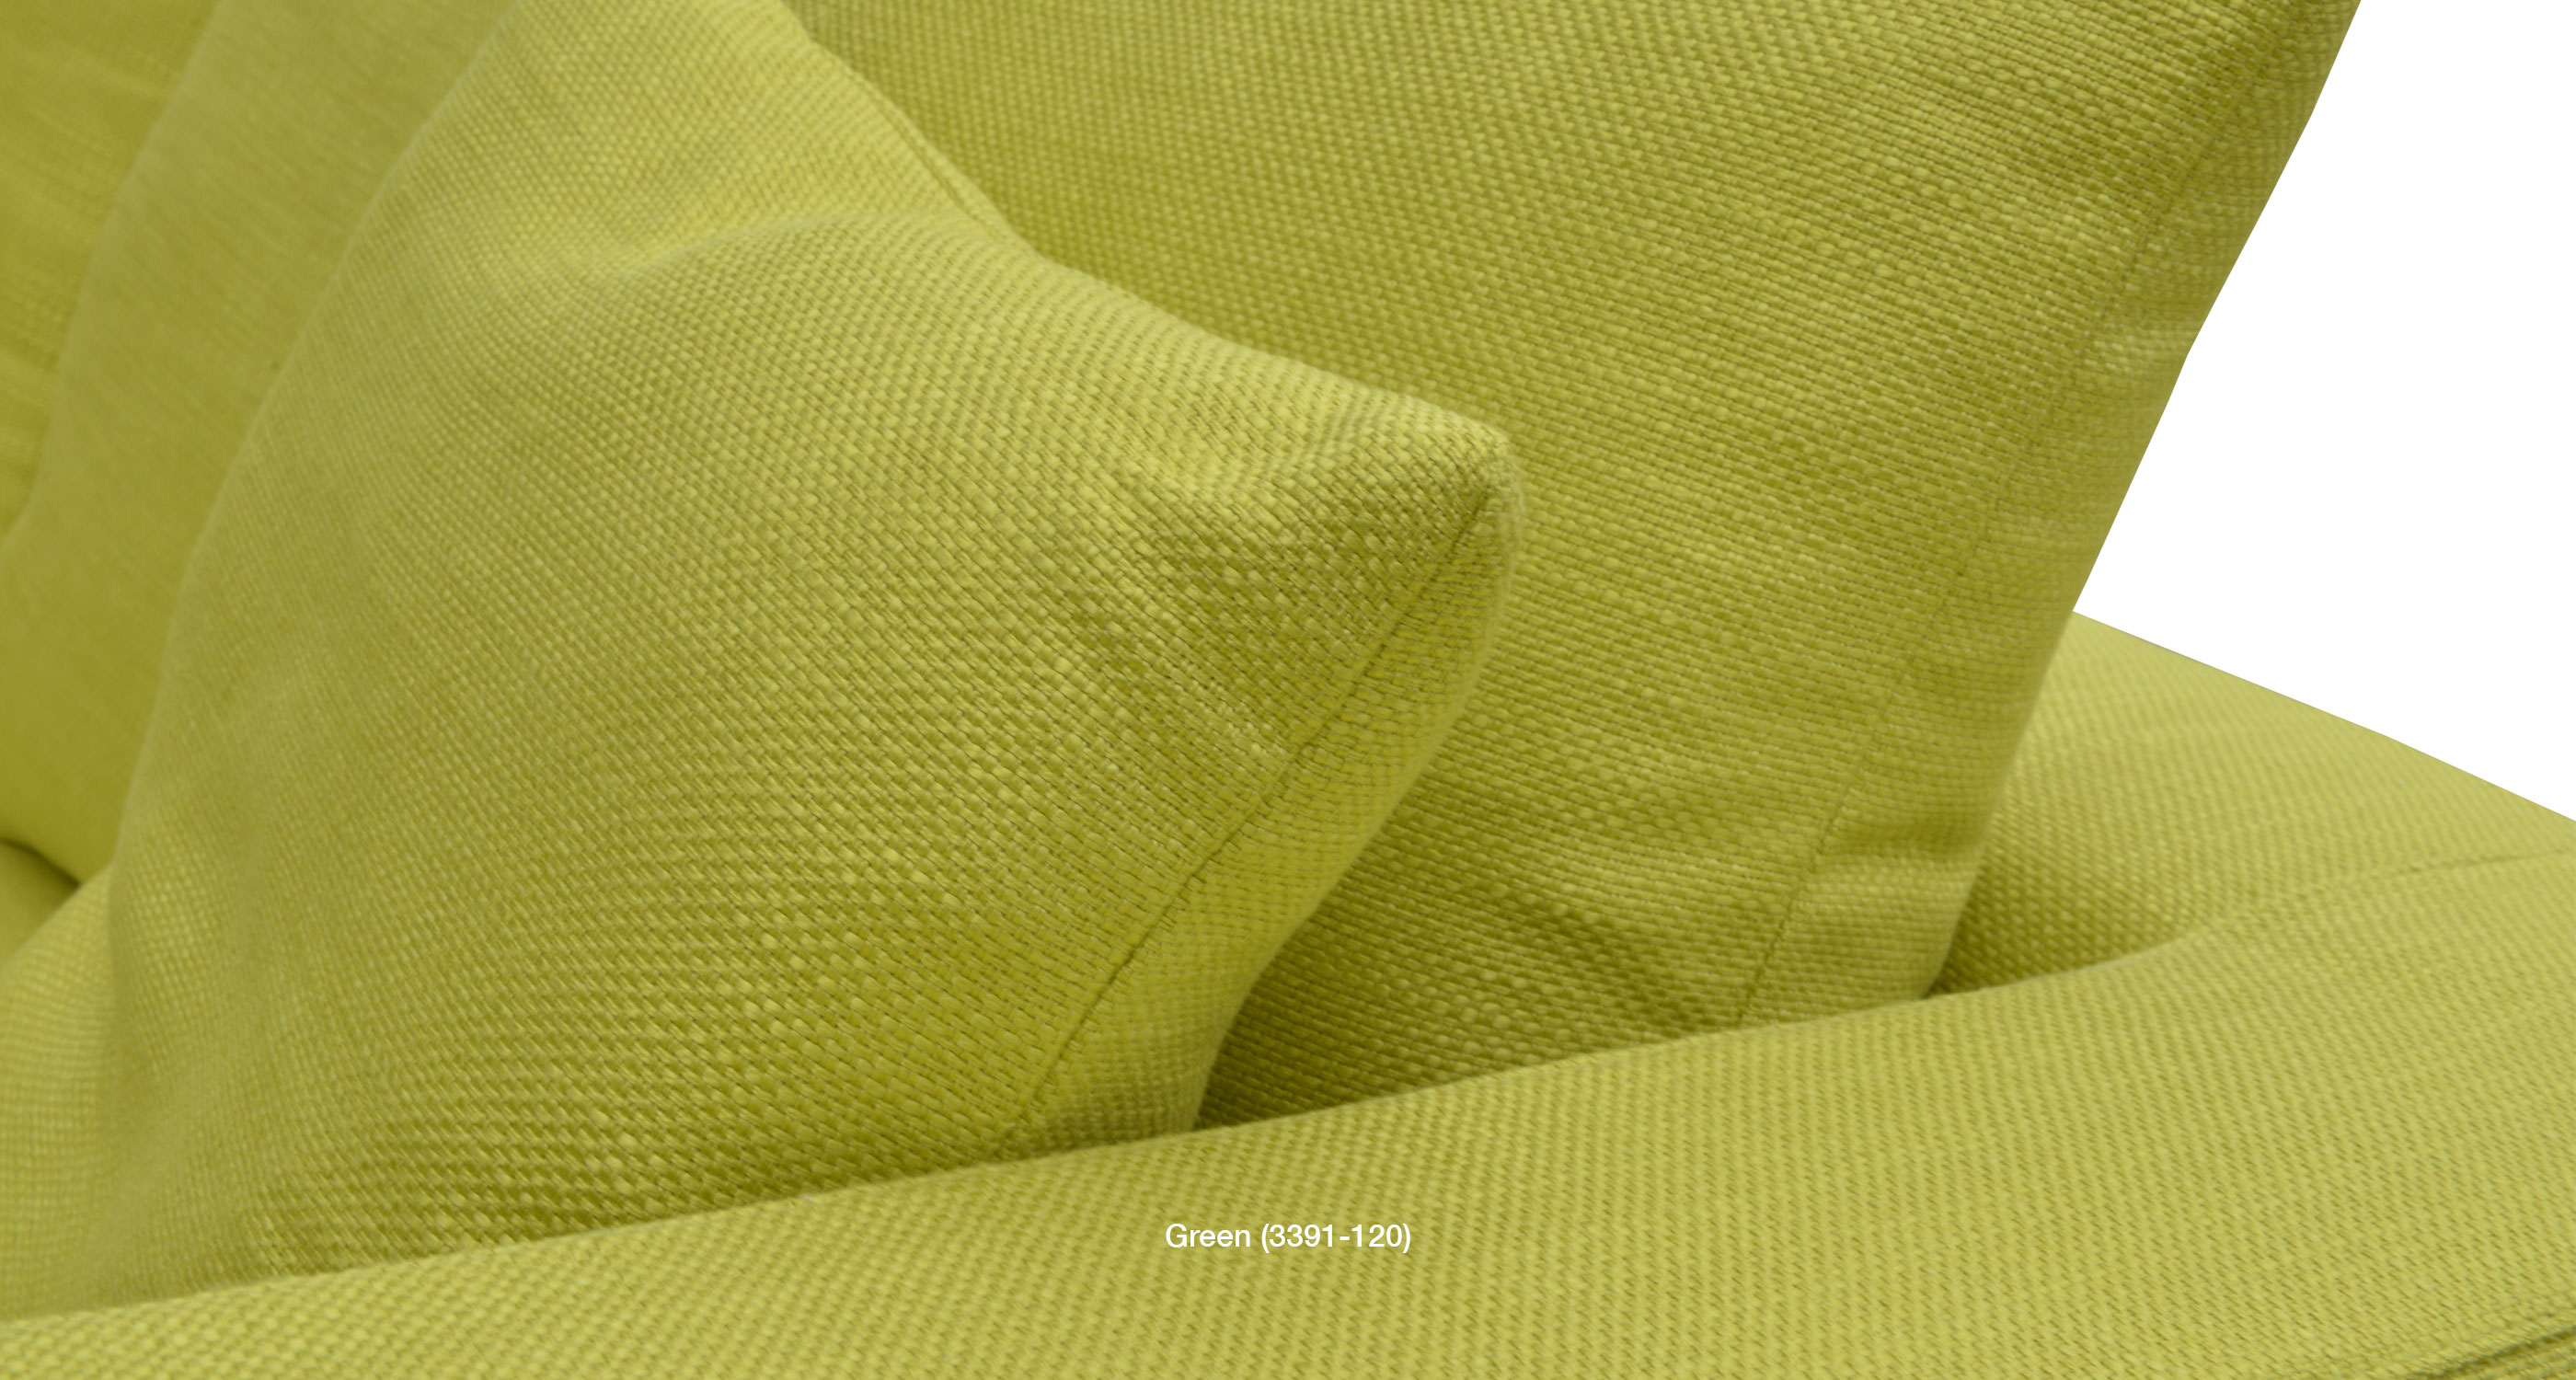 green fabric close up